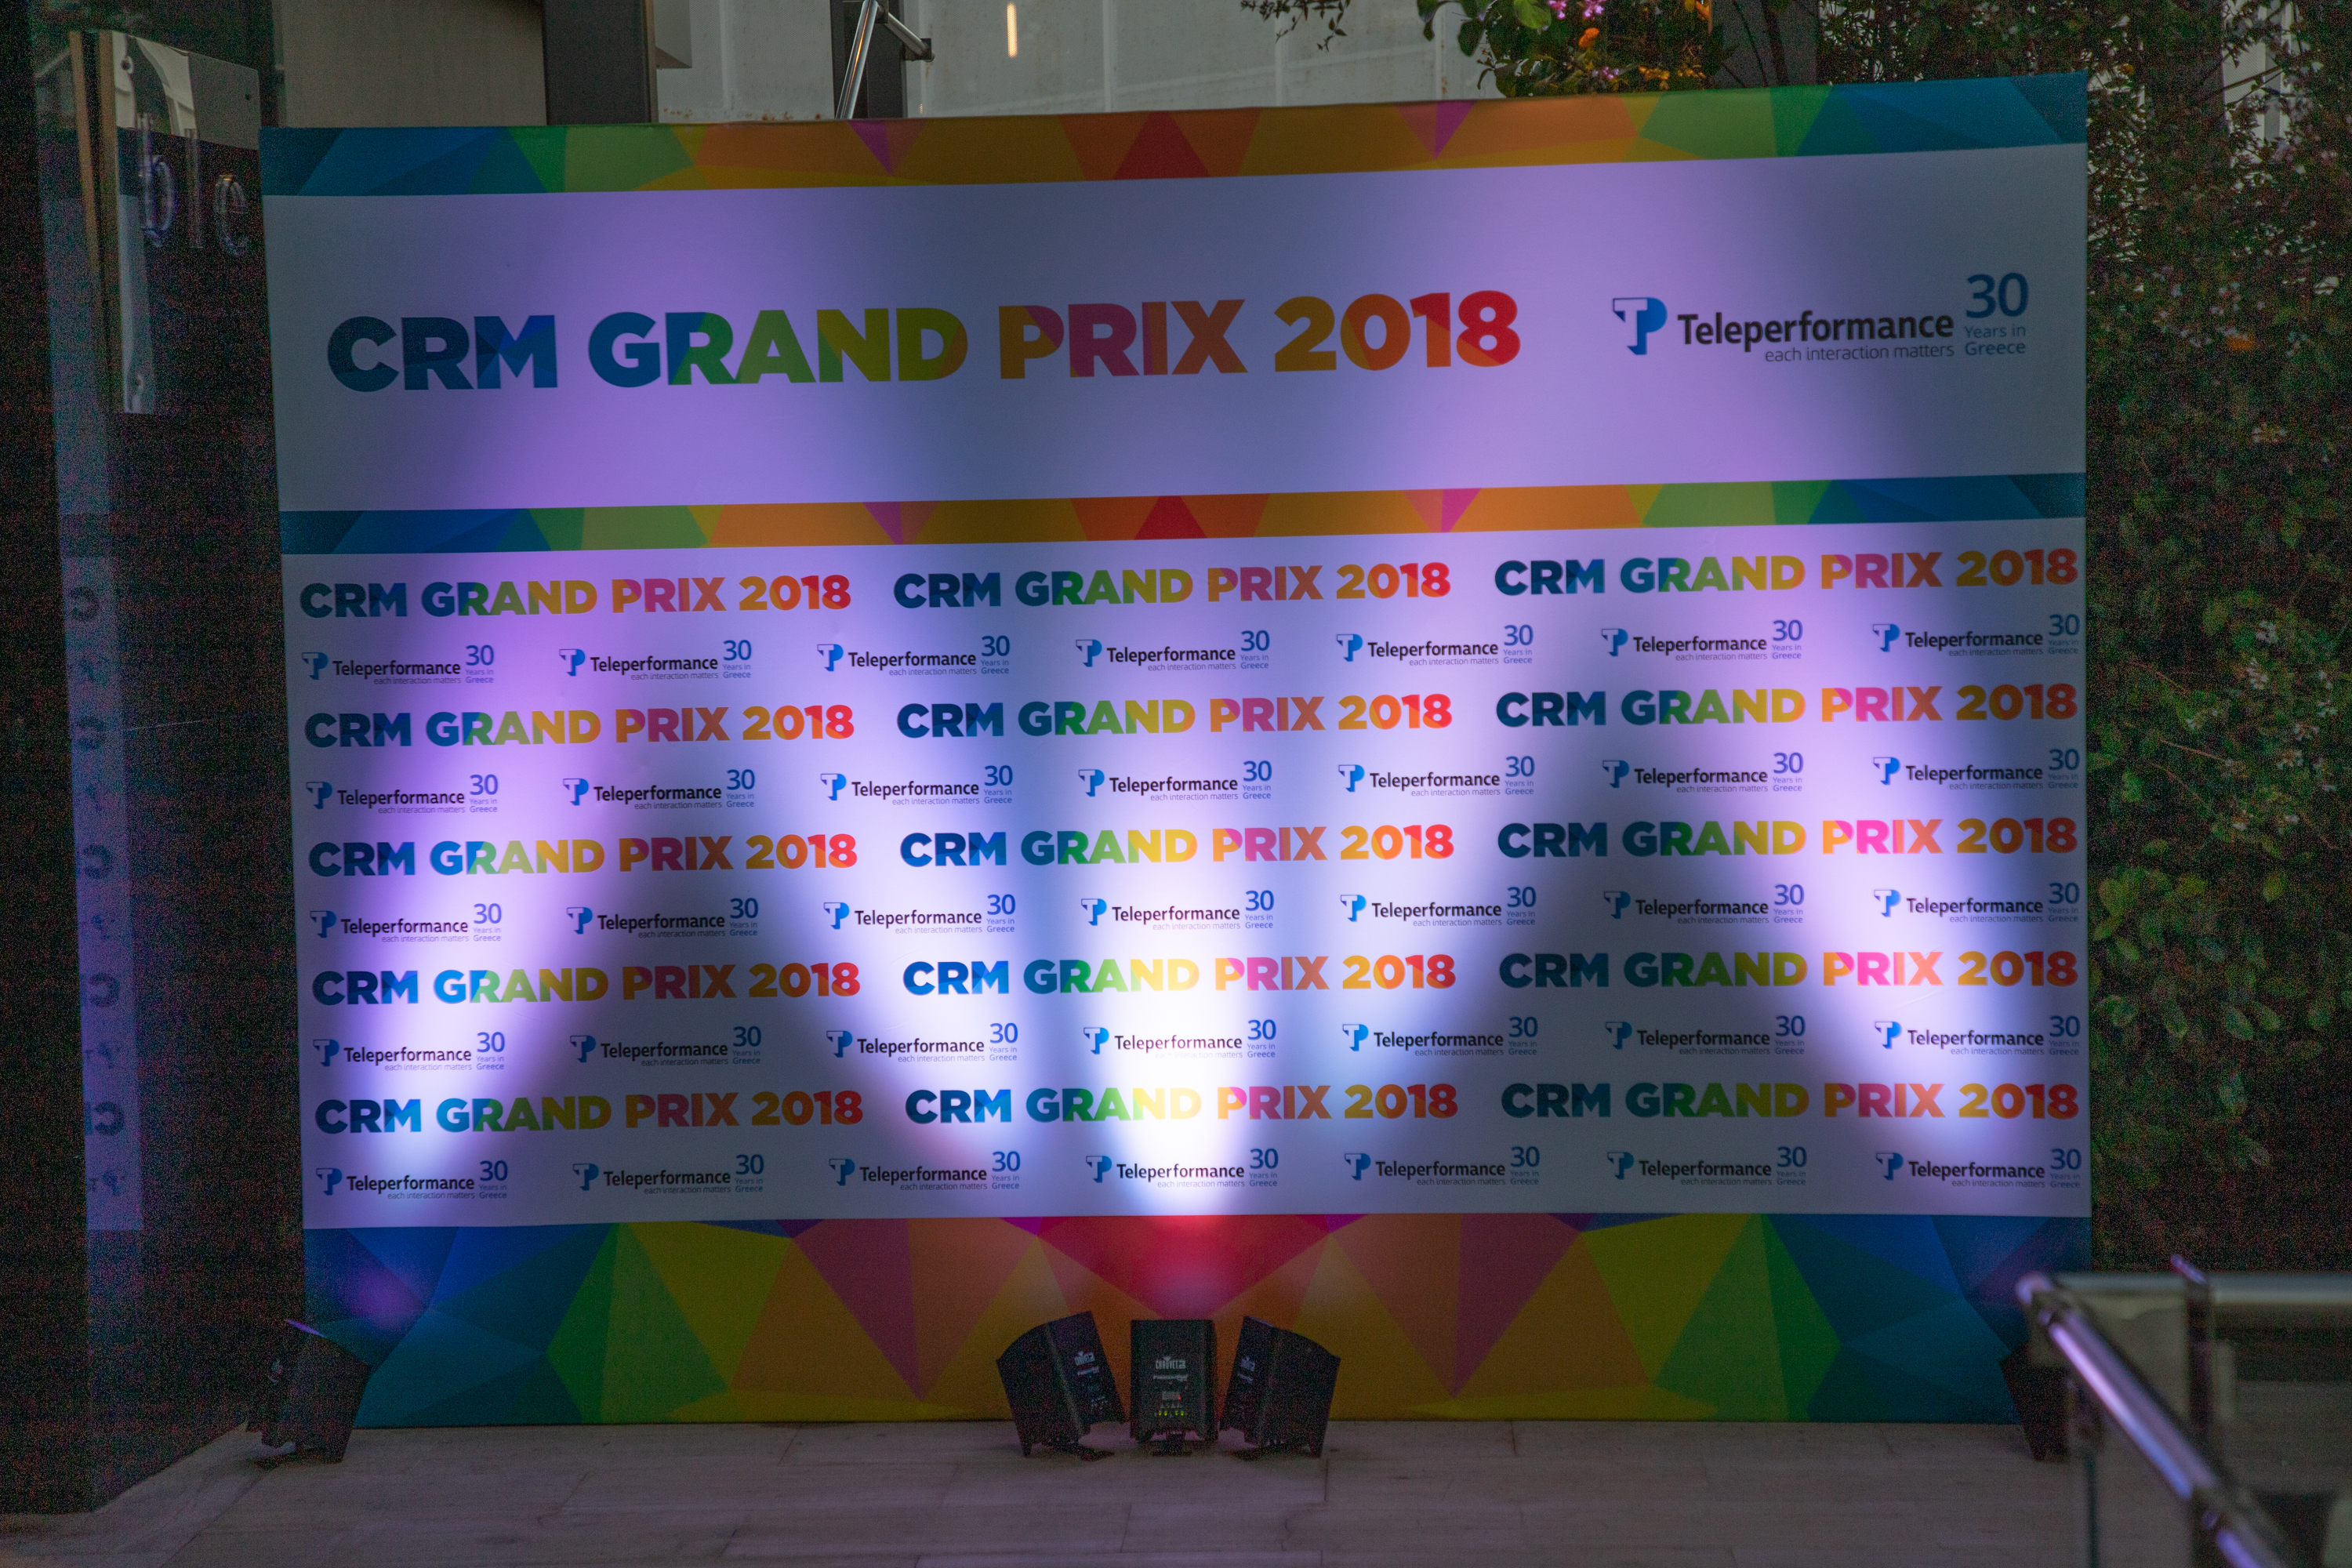 CRM Grand Prix Teleperformance